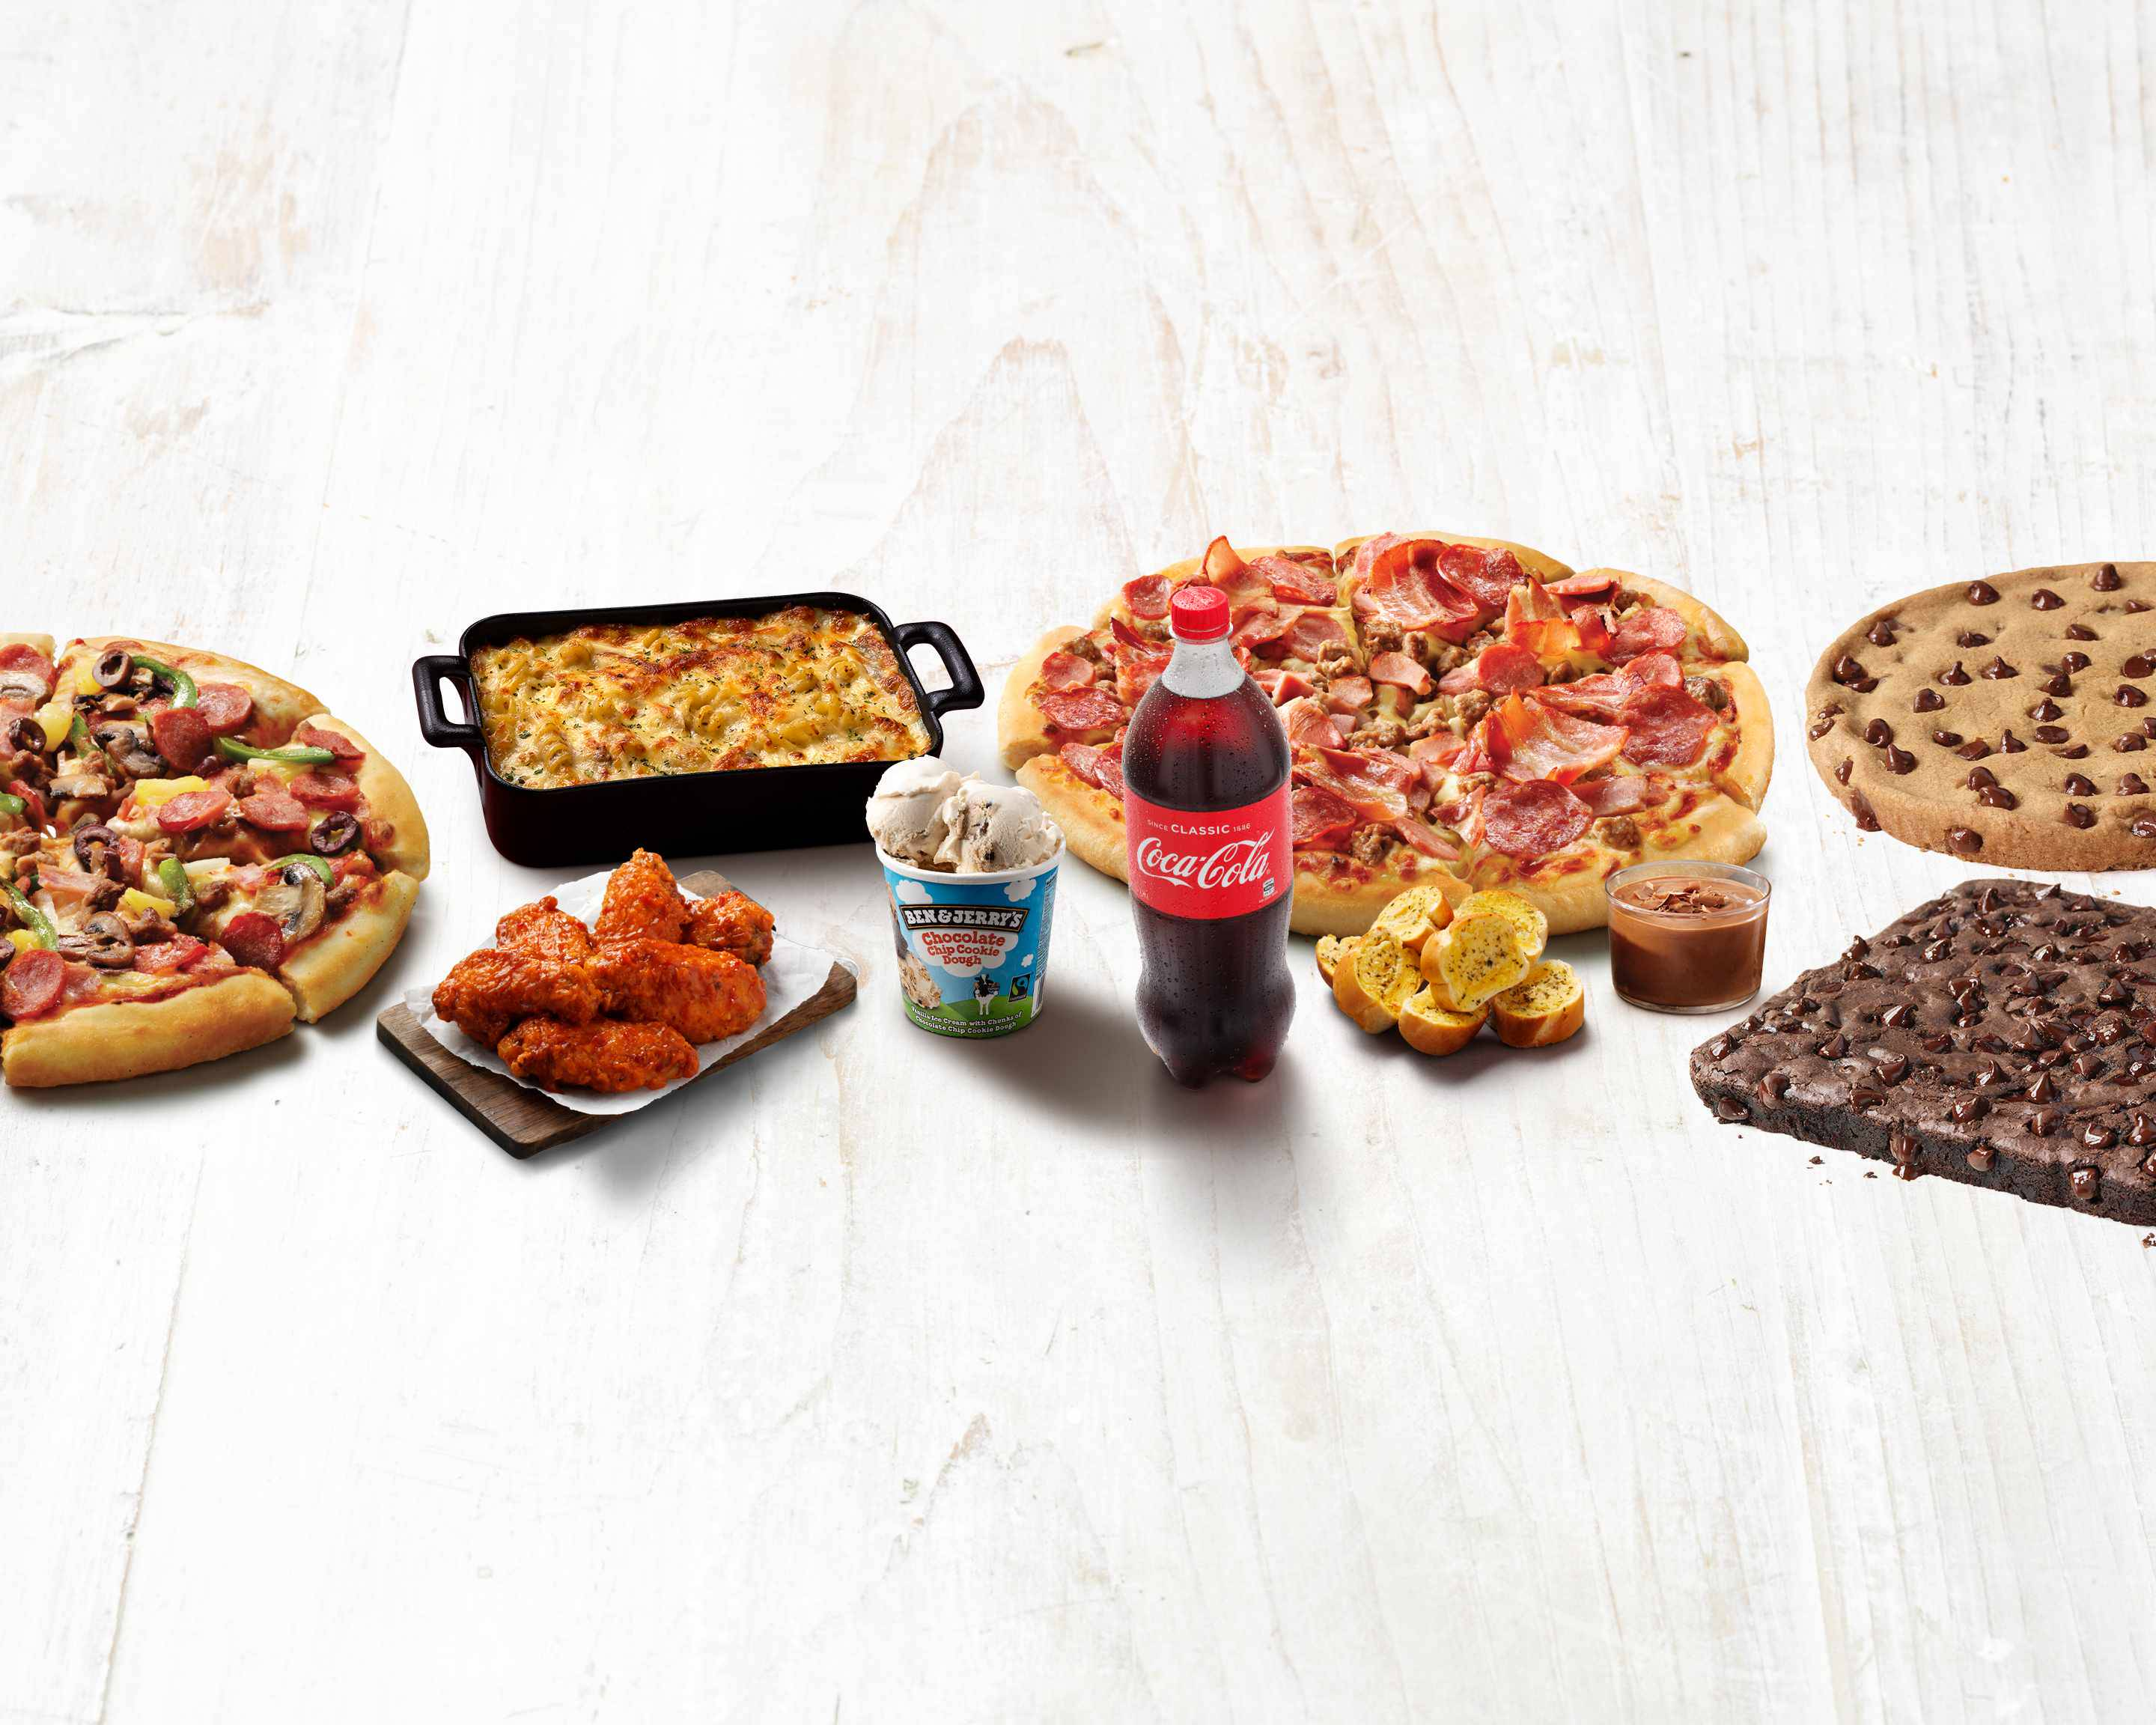 Pizza Hut Turramurra Takeaway In Sydney Delivery Menu Prices Uber Eats